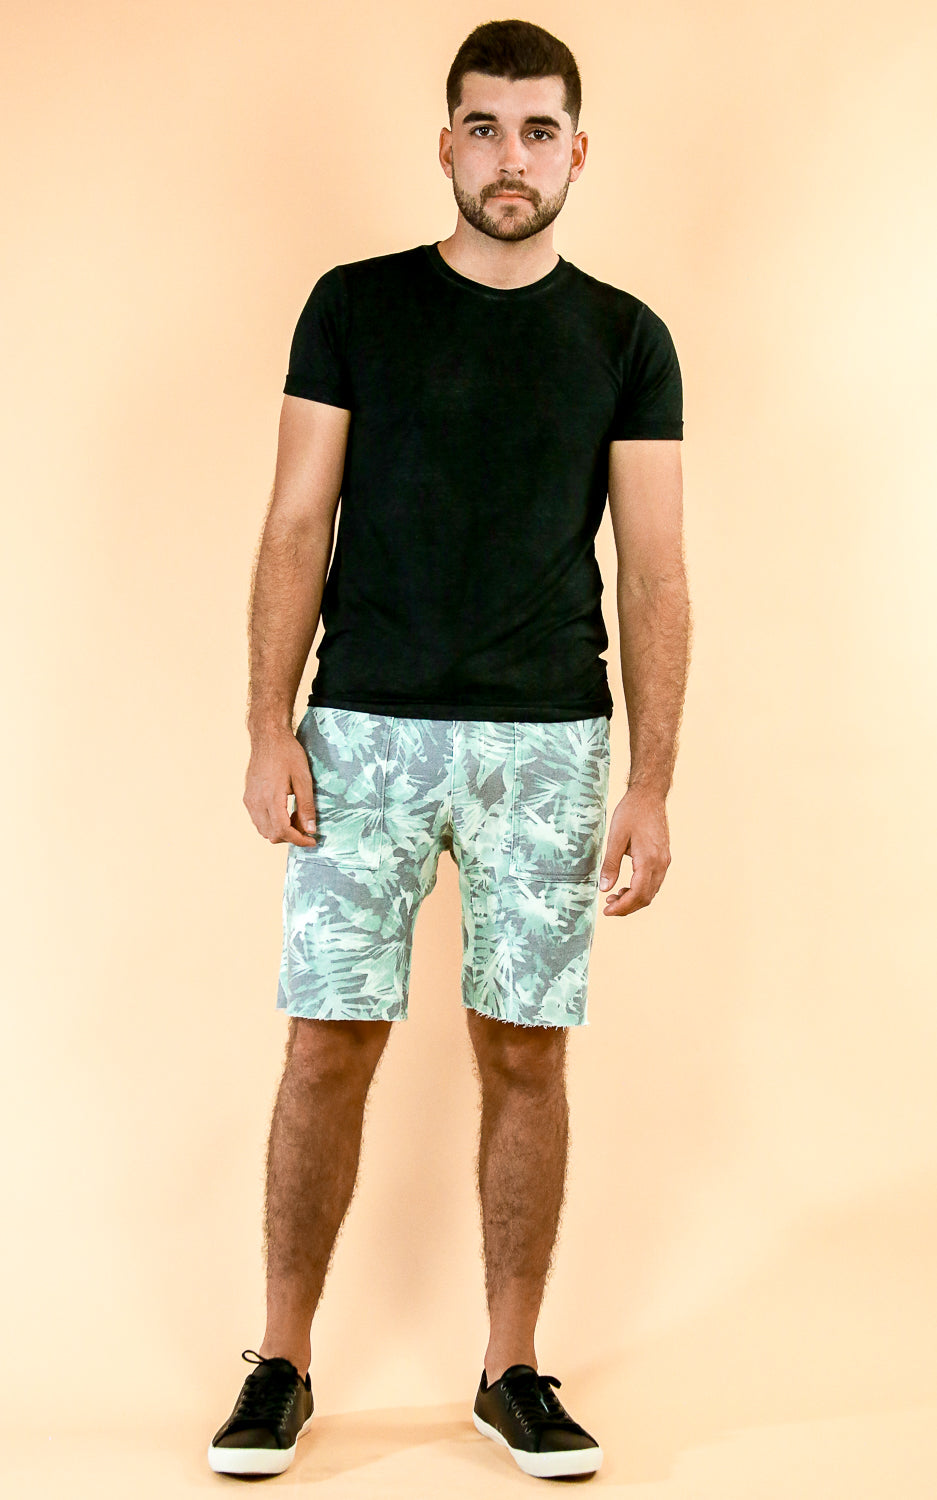 Sol Angeles shorts in green with palm tree print